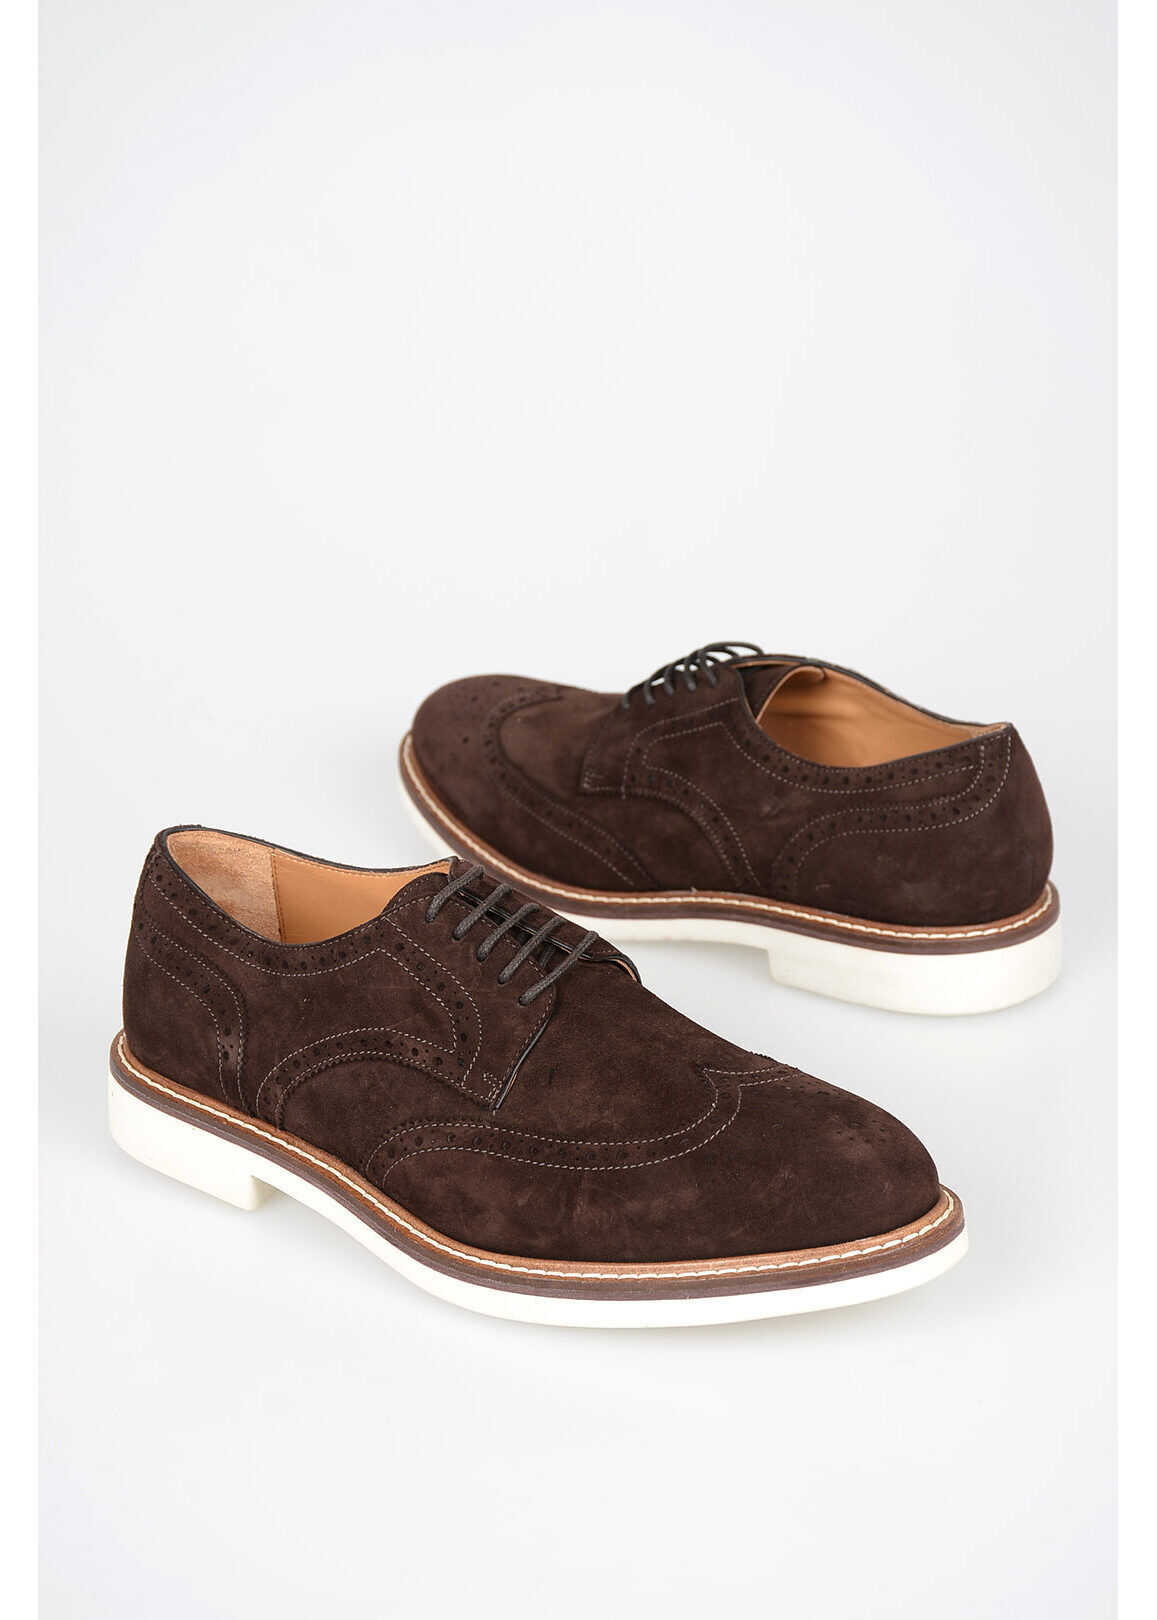 CORNELIANI Suede Leather Derby with broguing BROWN